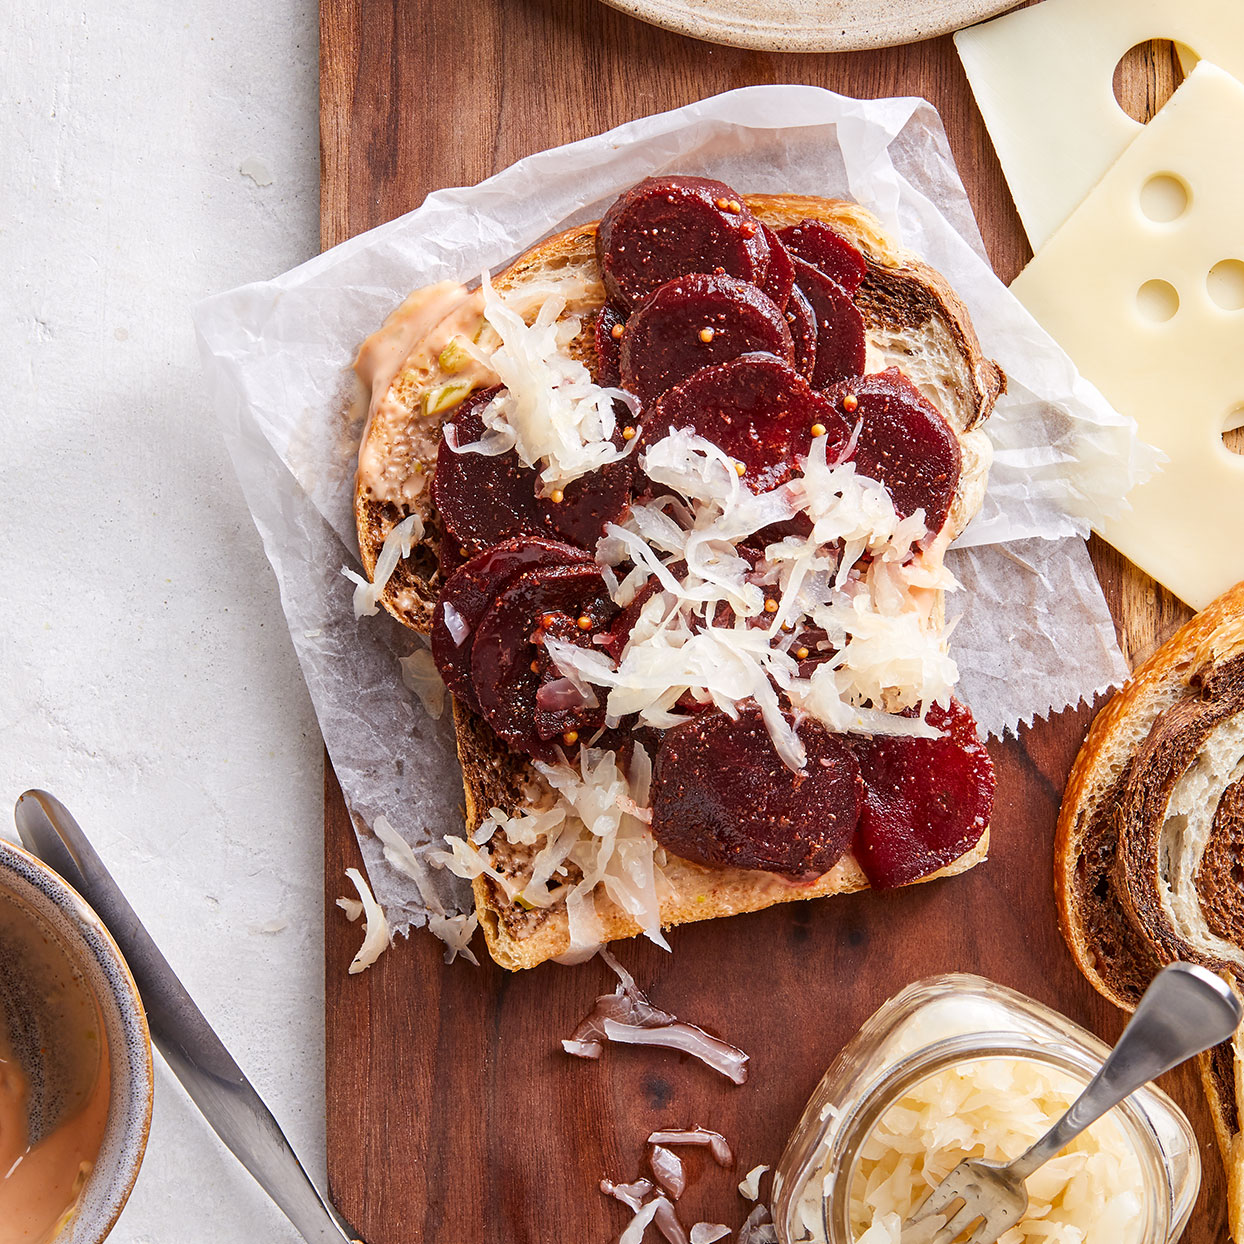 Tossing beets with coriander, mustard seeds, cinnamon and allspice gives them savory corned-beef flavor. With this vegetarian Reuben sandwich, you won't miss the meat.Source: EatingWell Magazine, November 2019